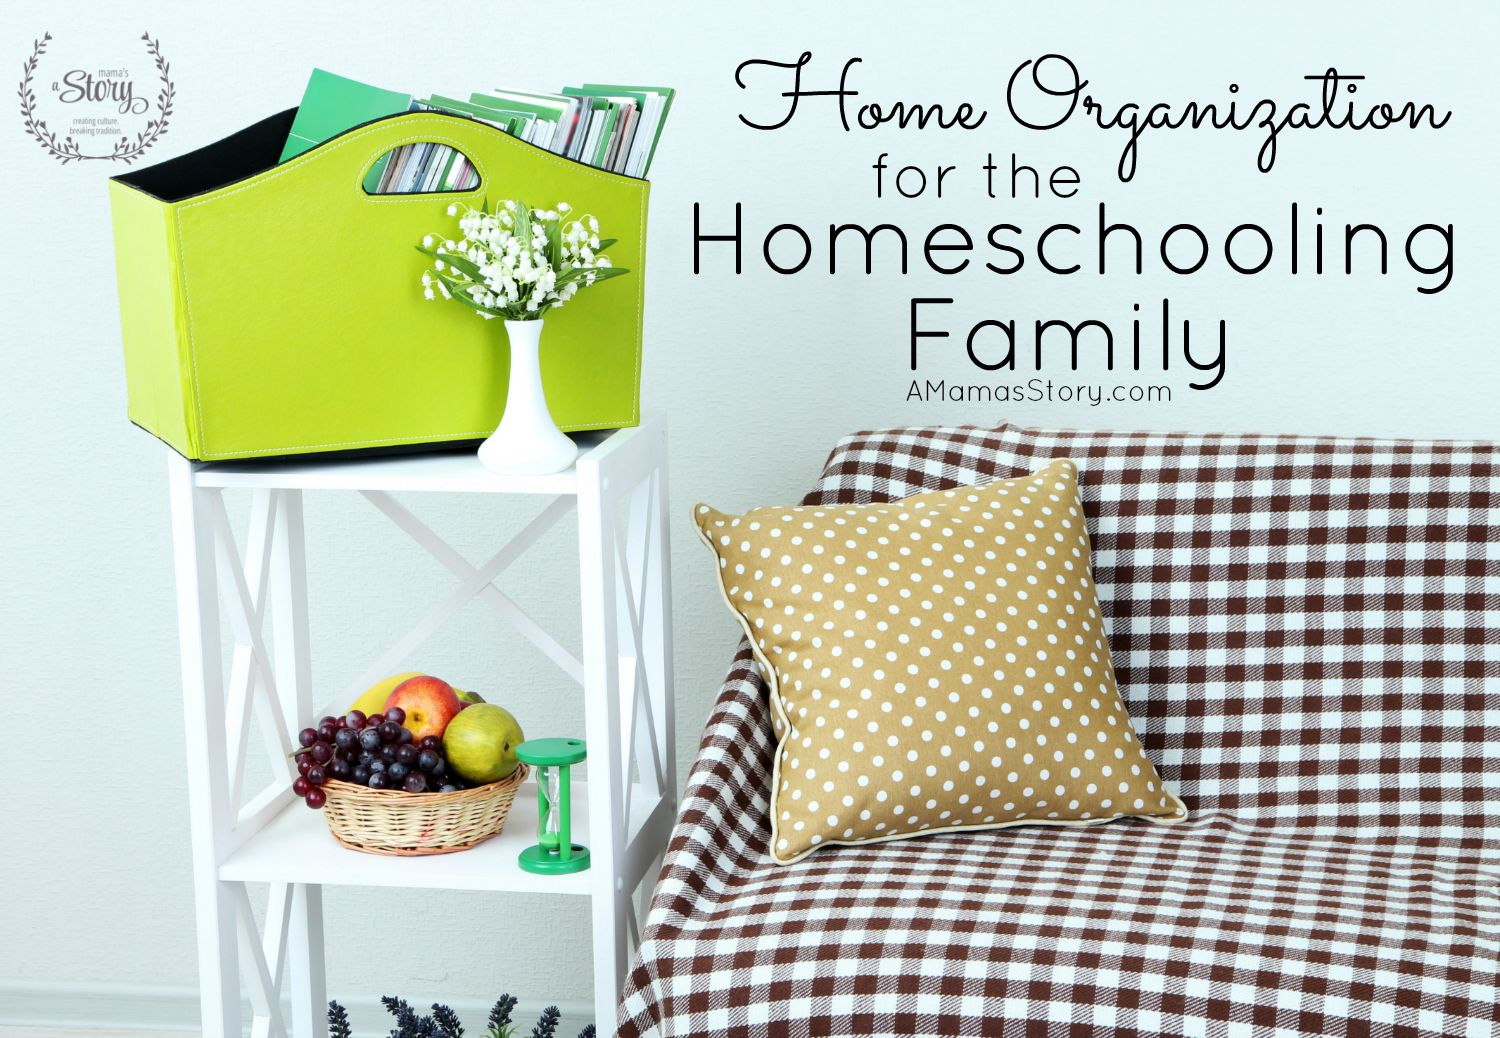 Home Organization for the Homeschooling Family